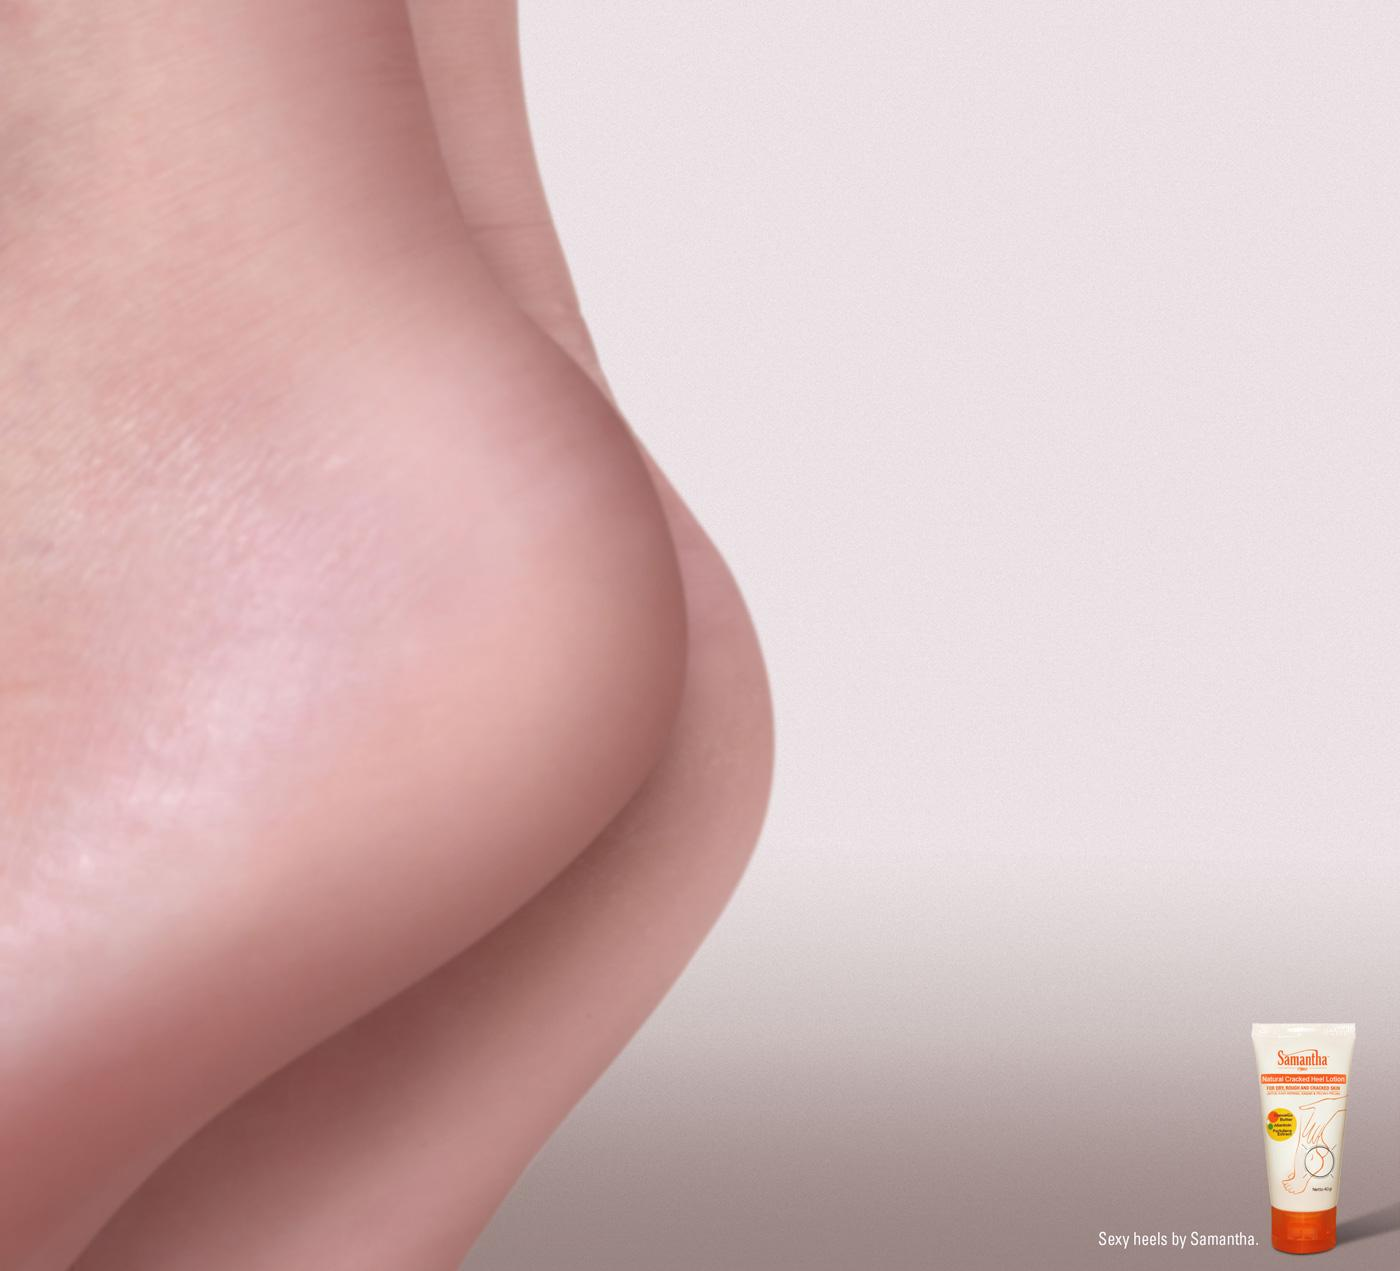 Samantha Cracked Heel Lotion Print Ad -  Sexy Heels